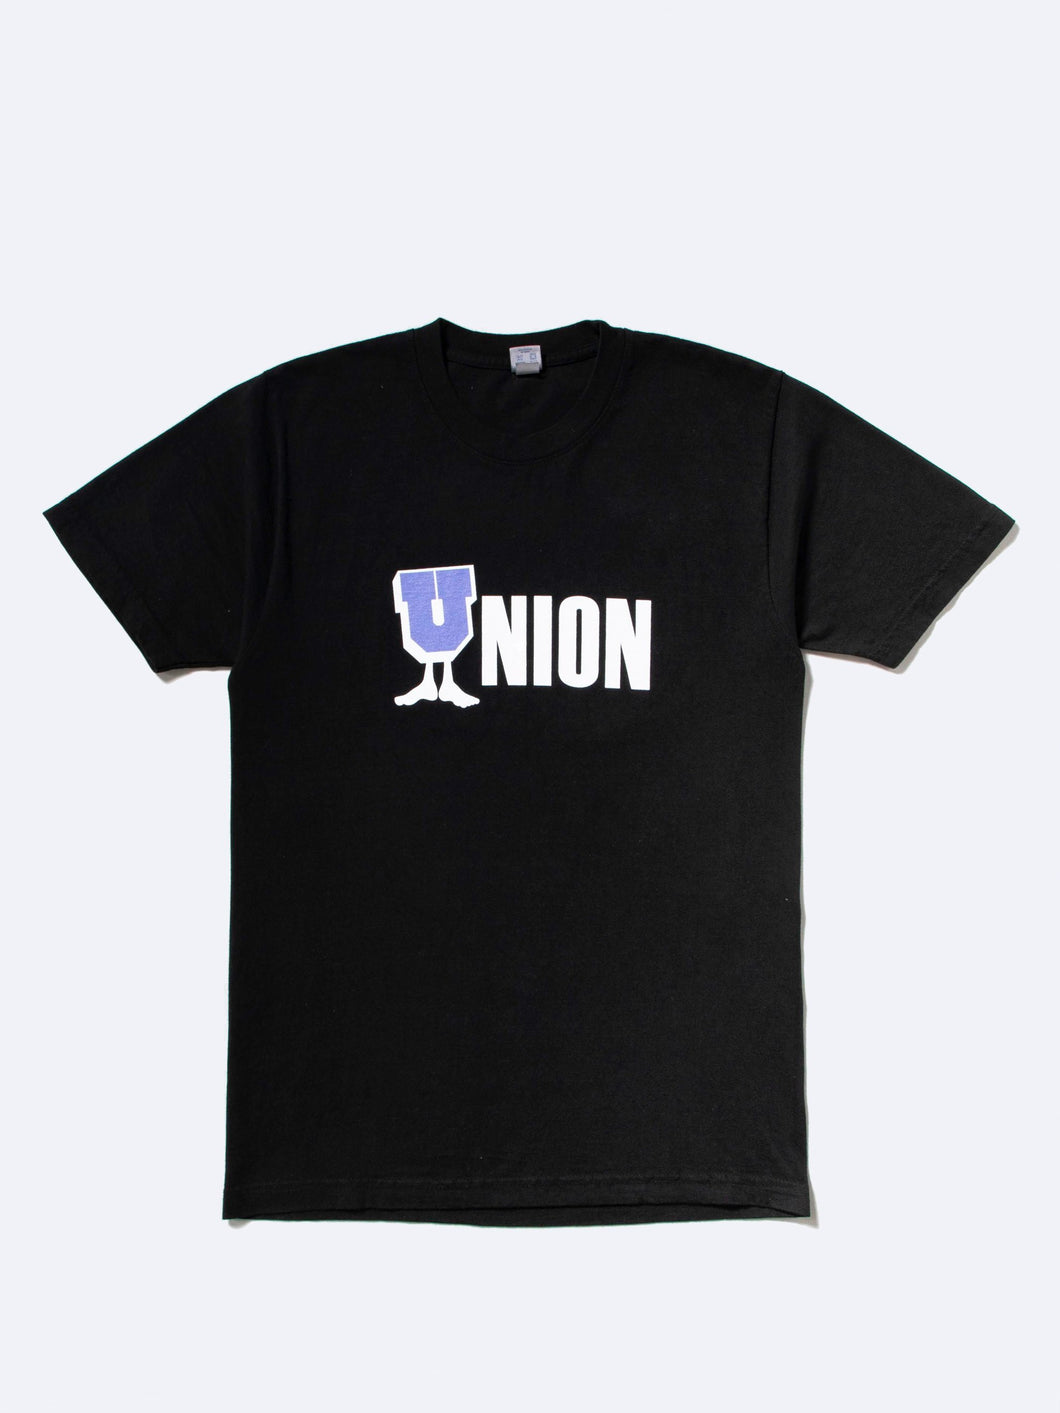 Undefeated x Union